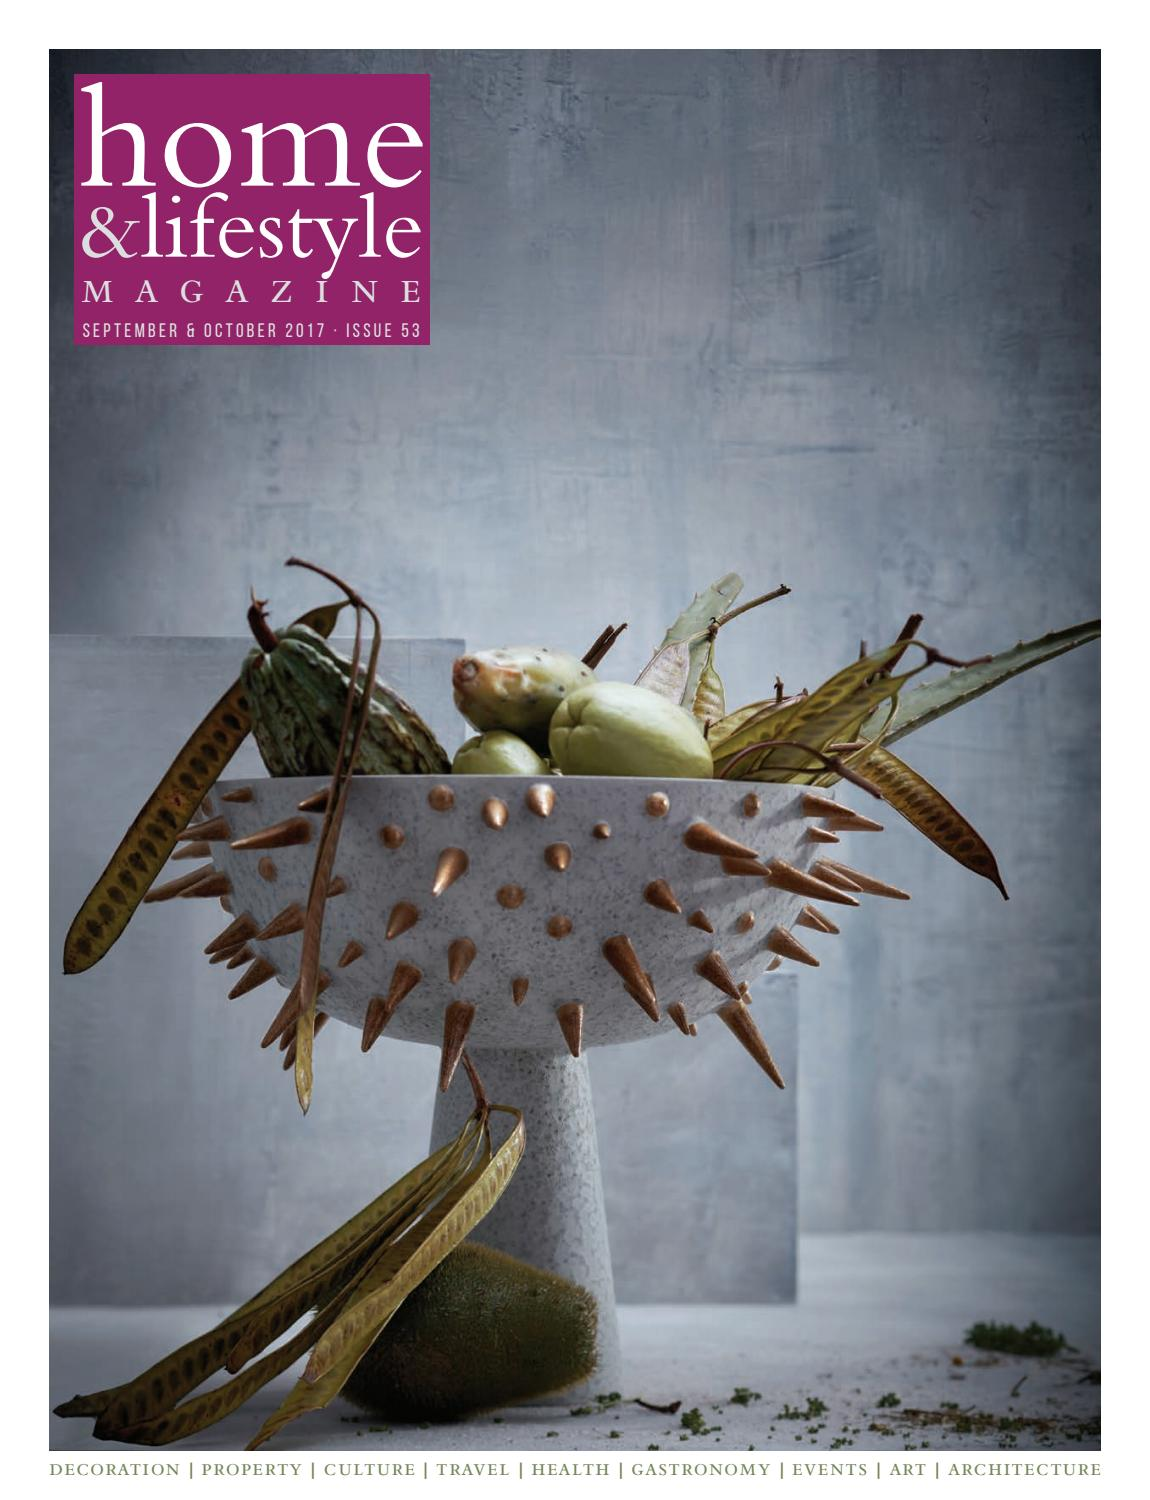 Home & Lifestyle 53. by Home & Lifestyle Magazine - issuu